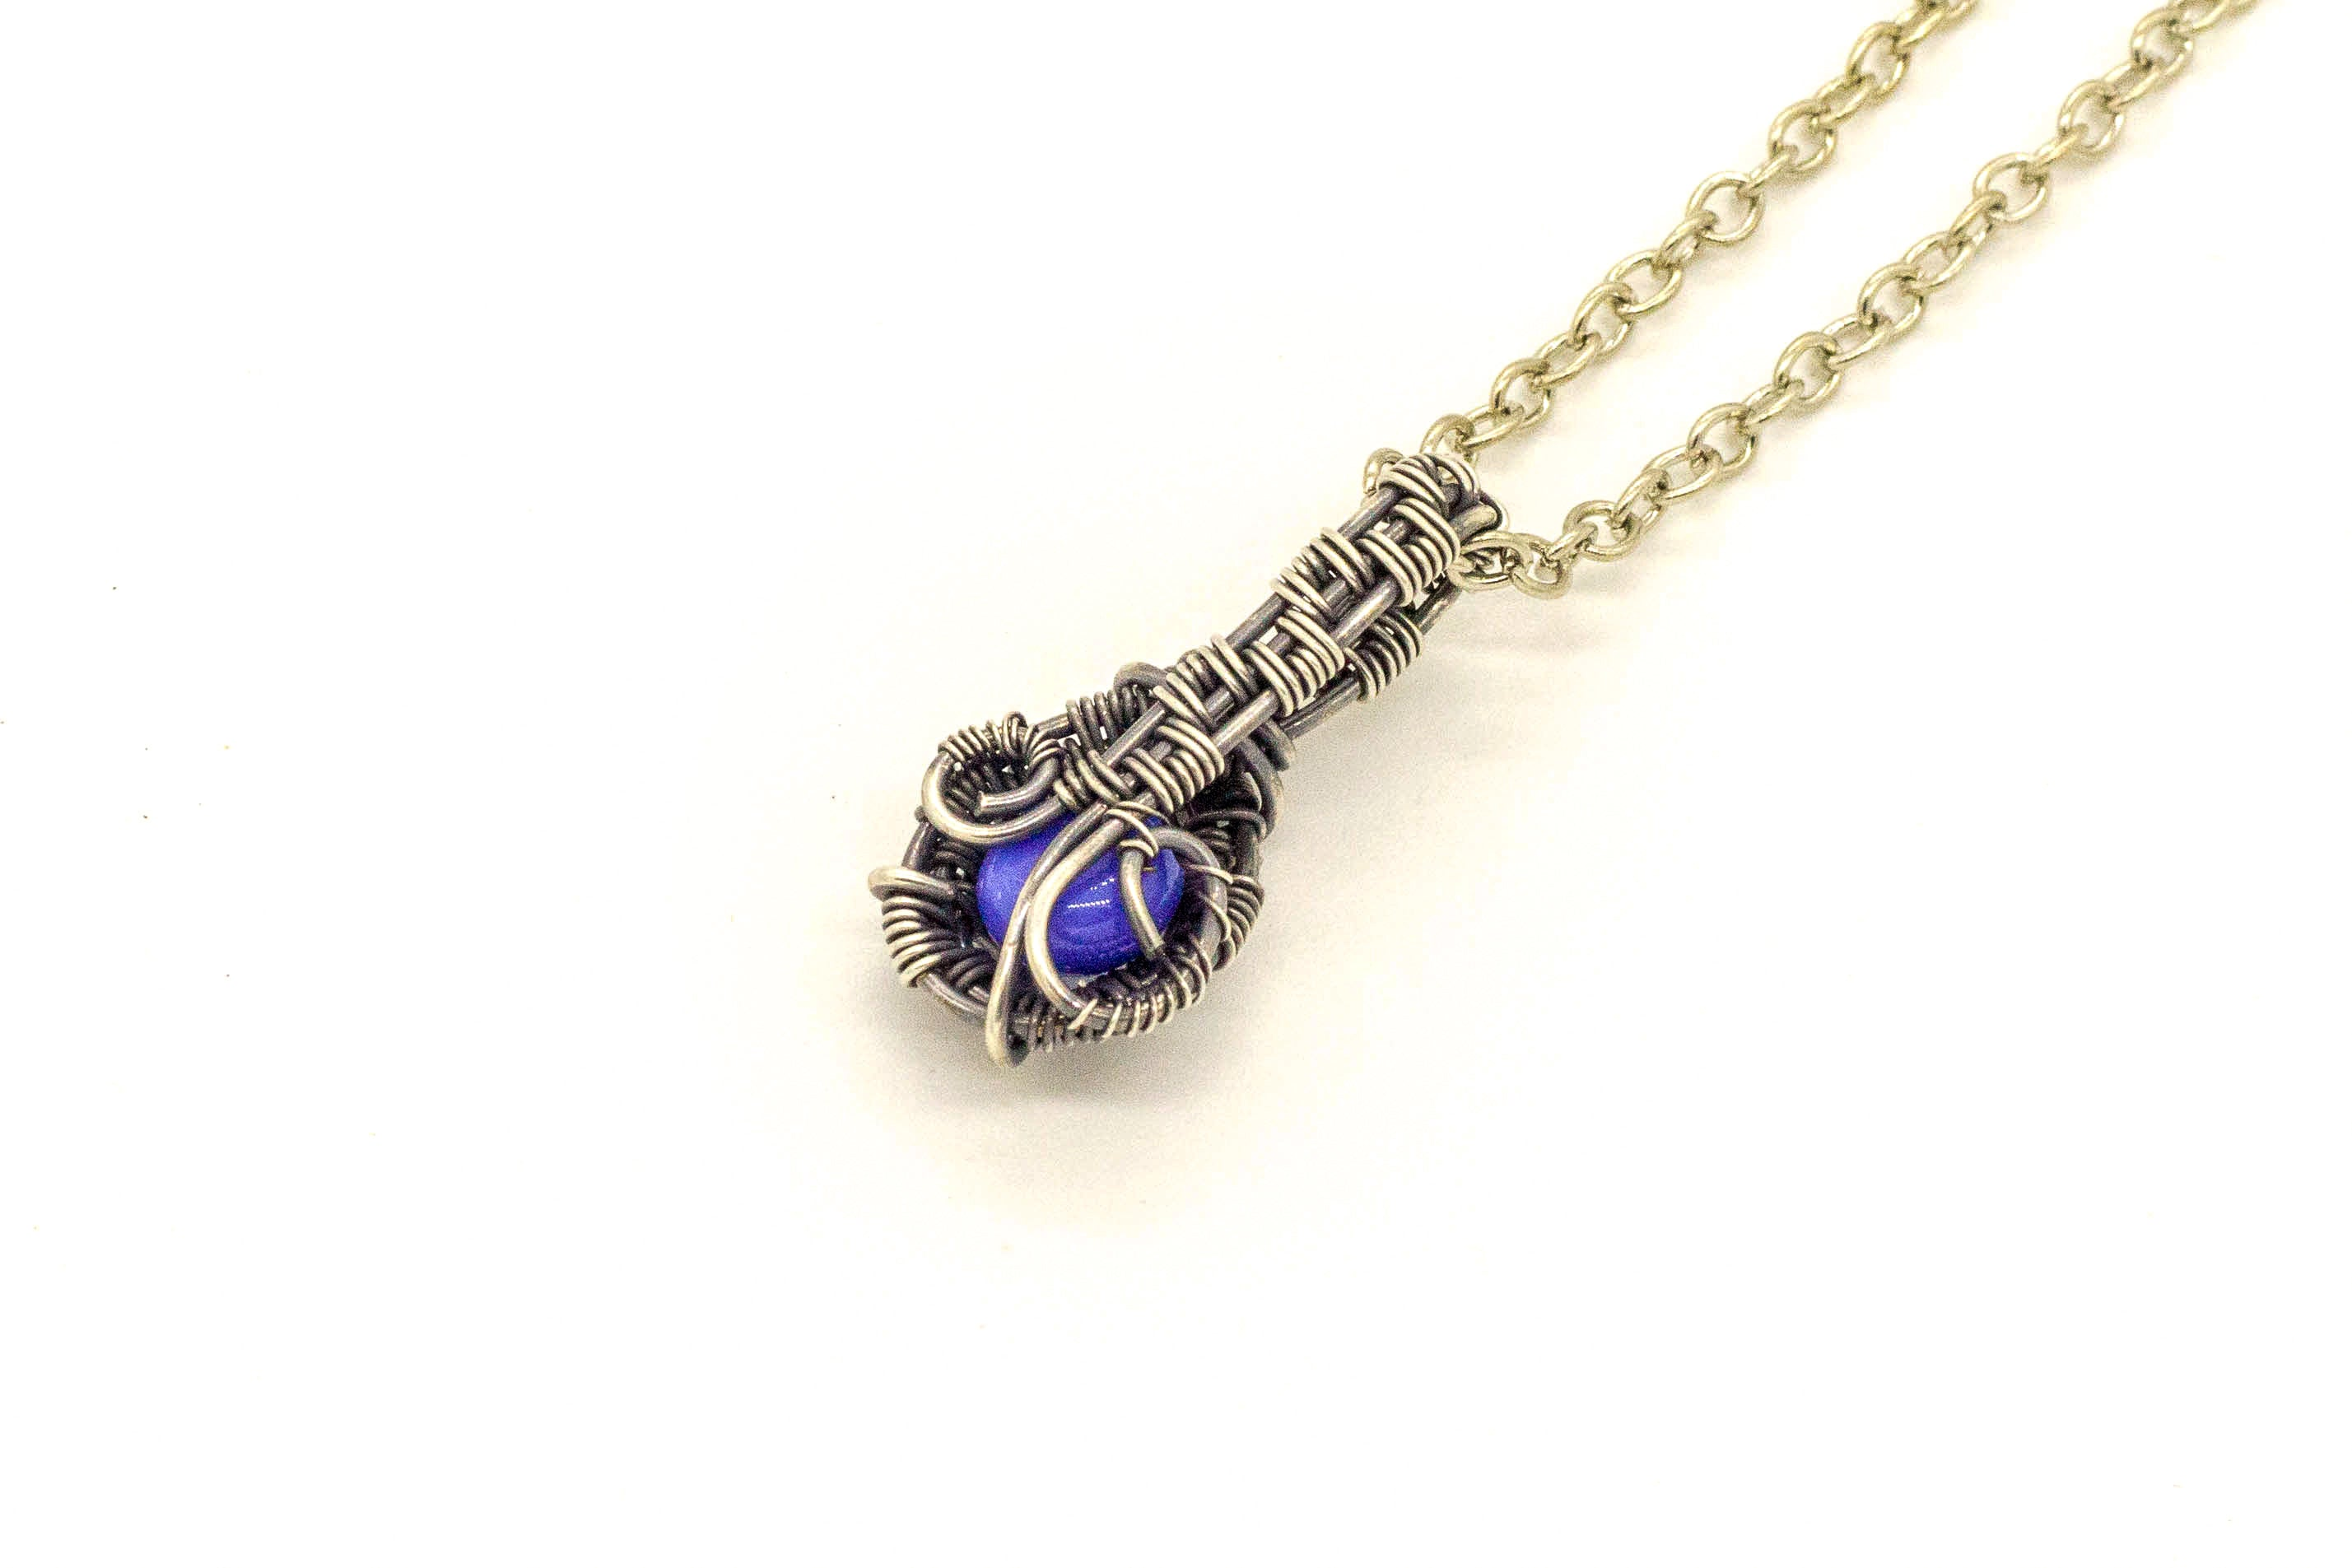 blue-fused-glass-mini-pendant-sterling-silver-wire-wrapping-nymph-in-the-woods-jewelry